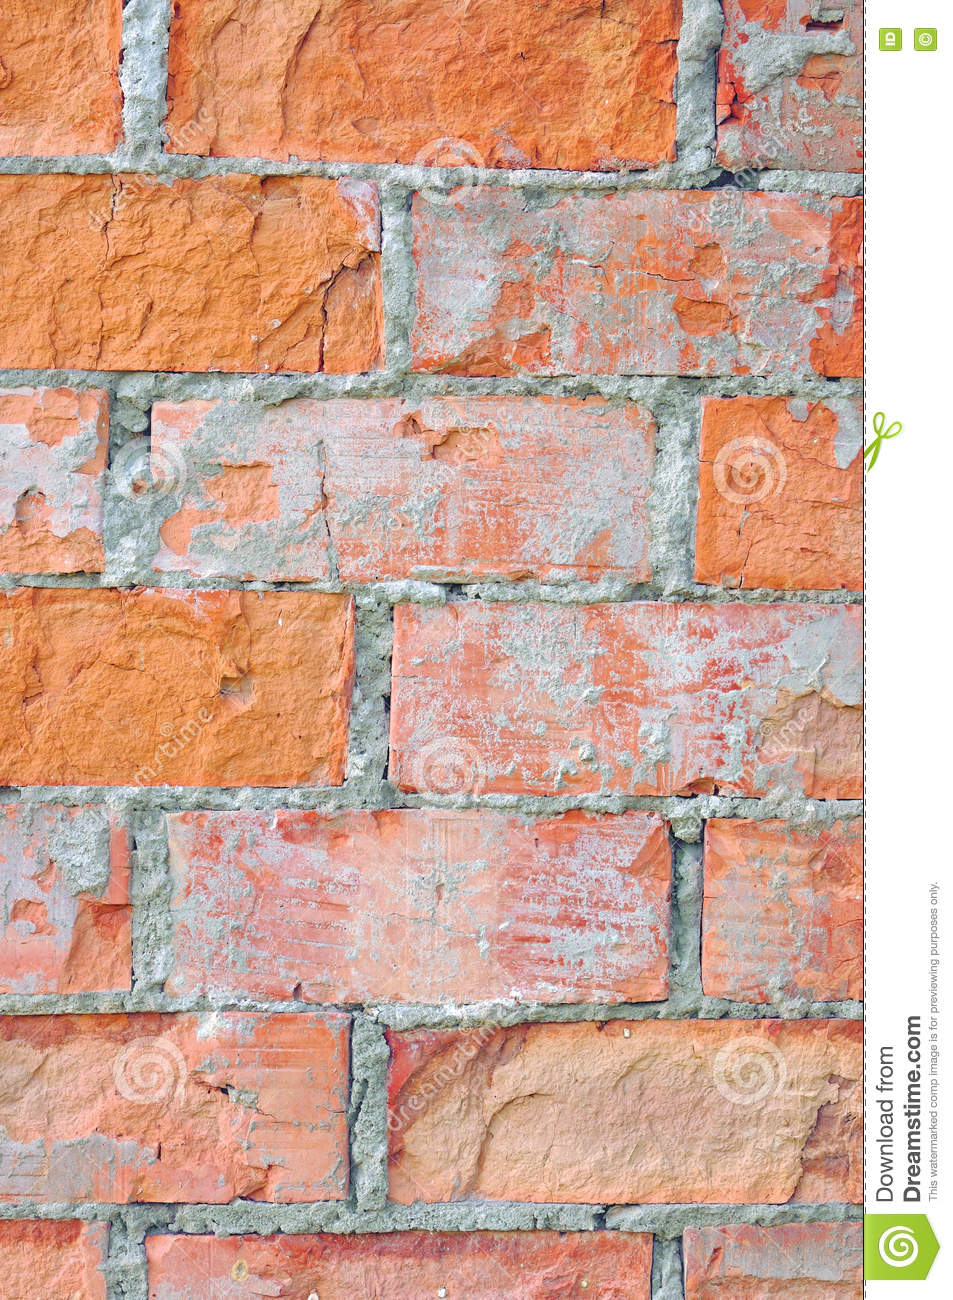 Red Brick Stone : Red brick stone wall vertical background royalty free